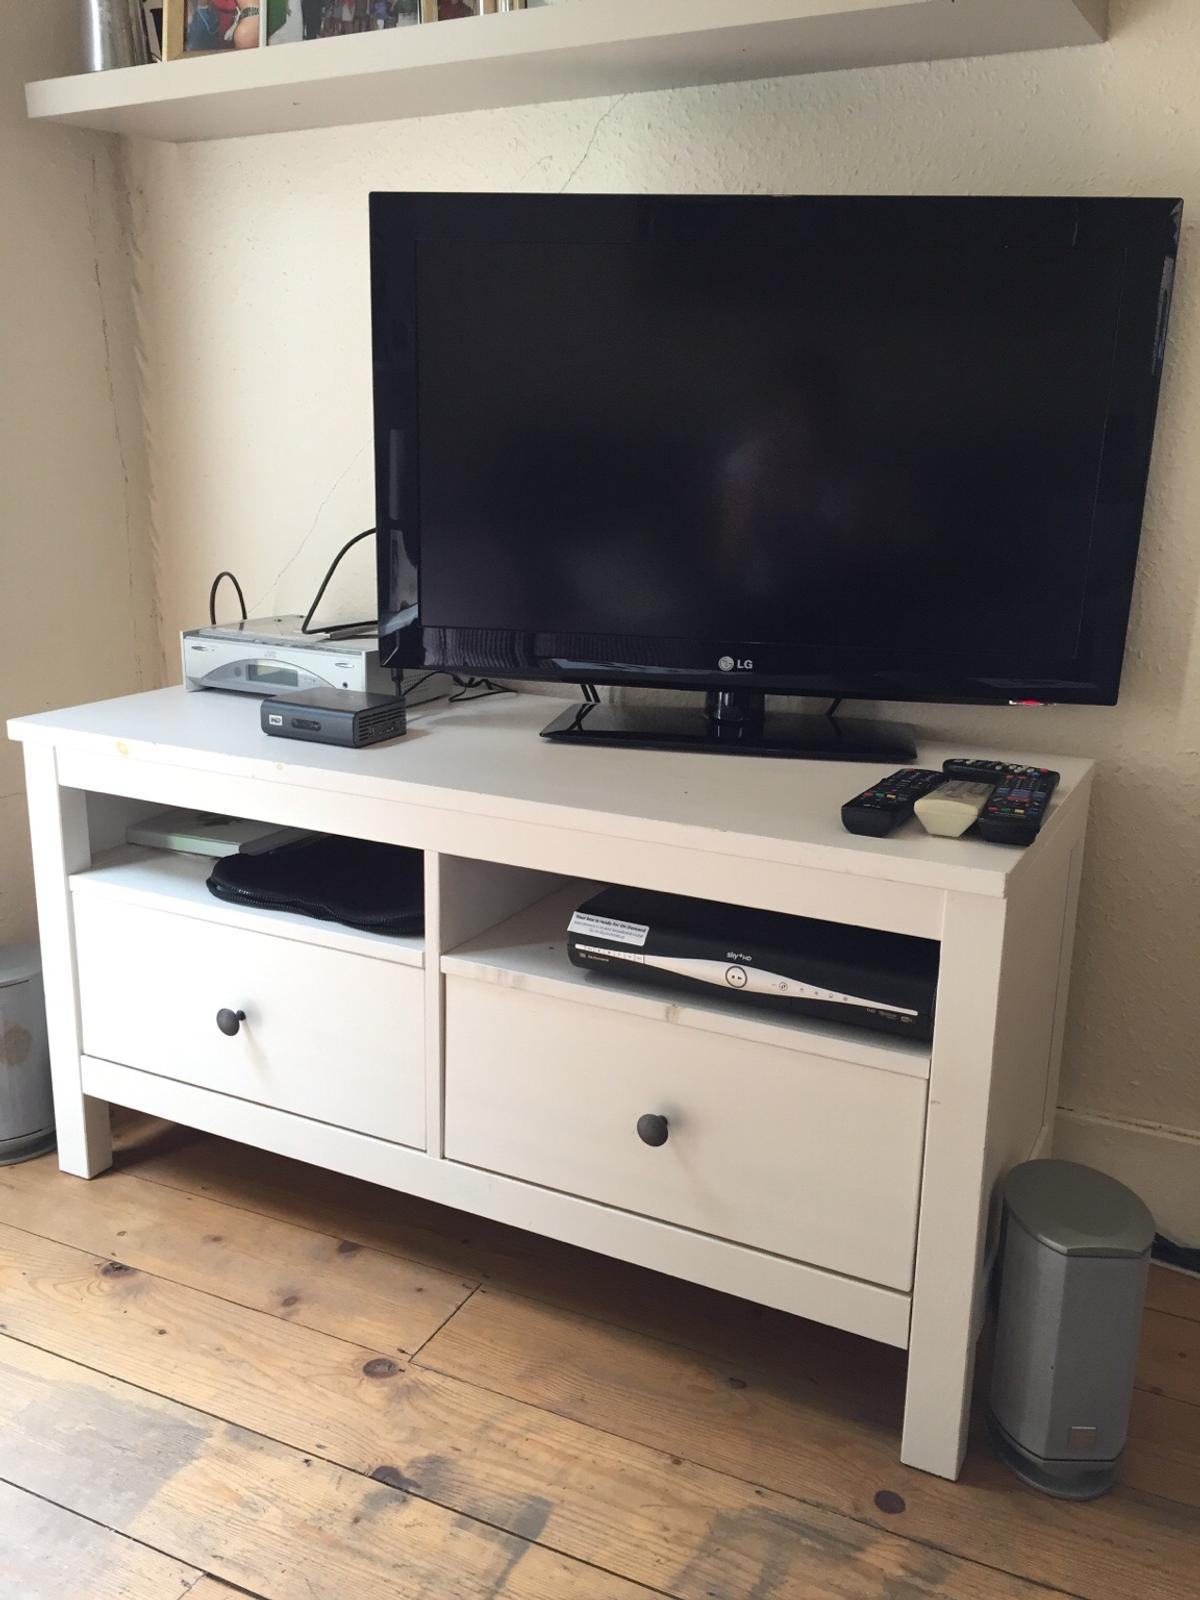 Ikea Hemnes Tv Stand Two Drawers Rrp 150 In Sw2 London Fur 50 00